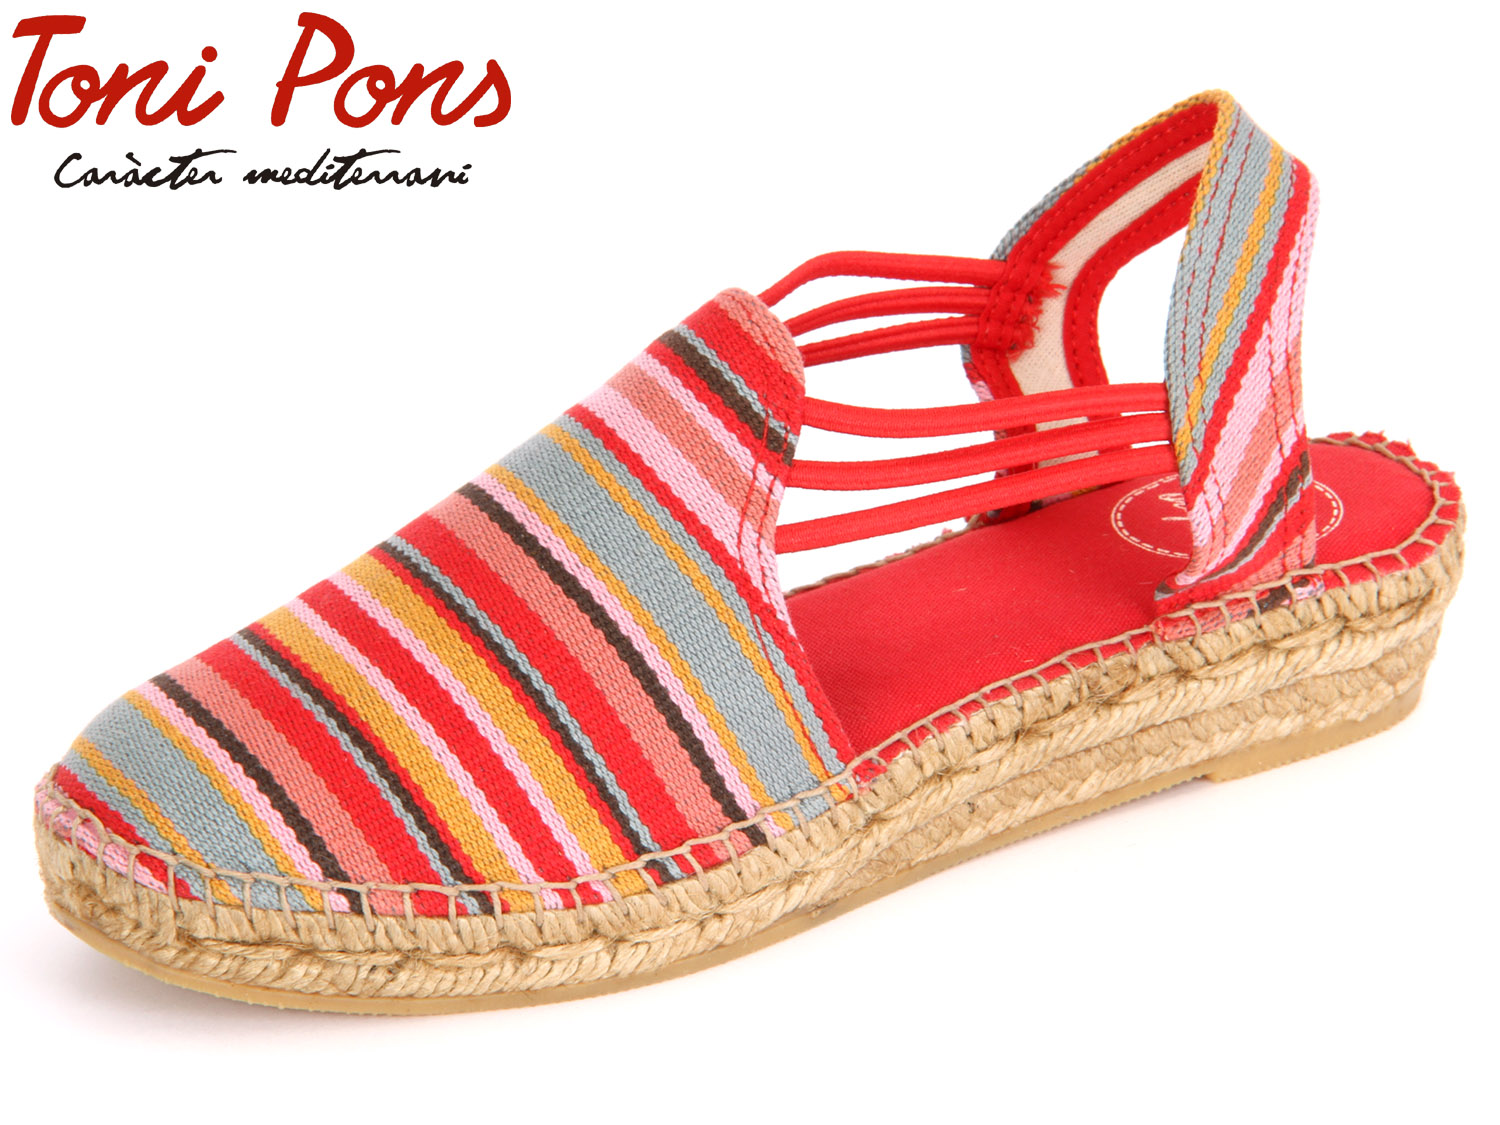 Toni Pons Norma Norma red SDswRrkSZ